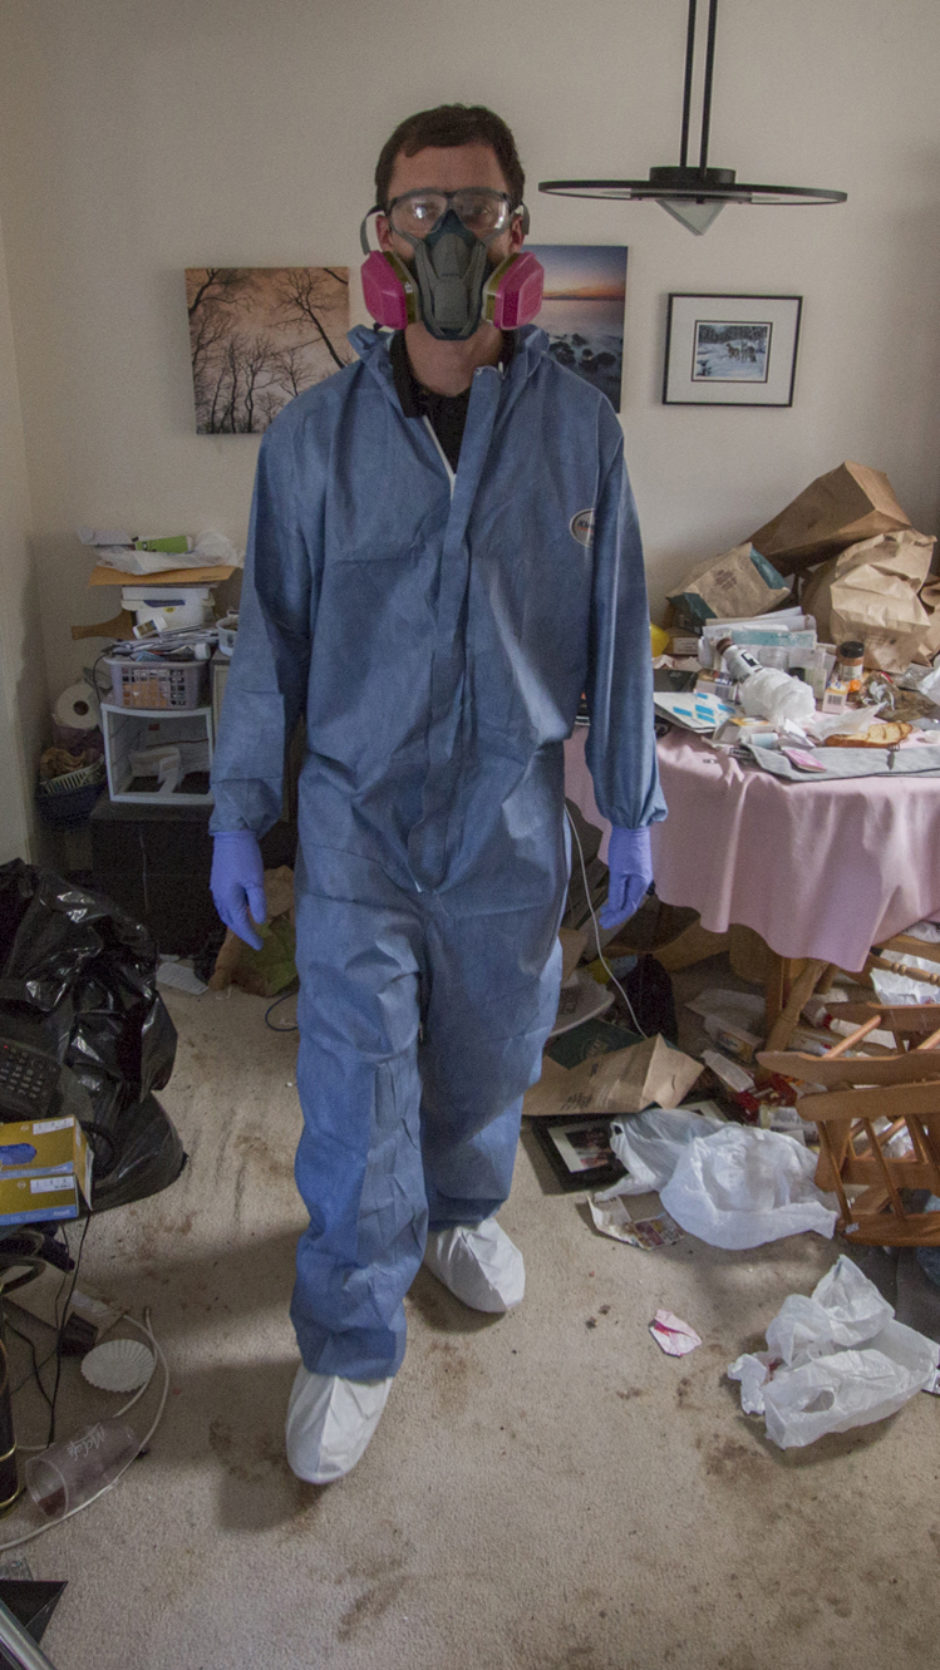 Curtis Kreklau, wearing protective gear, stands in the middle of a living room cluttered with garbage and debris.